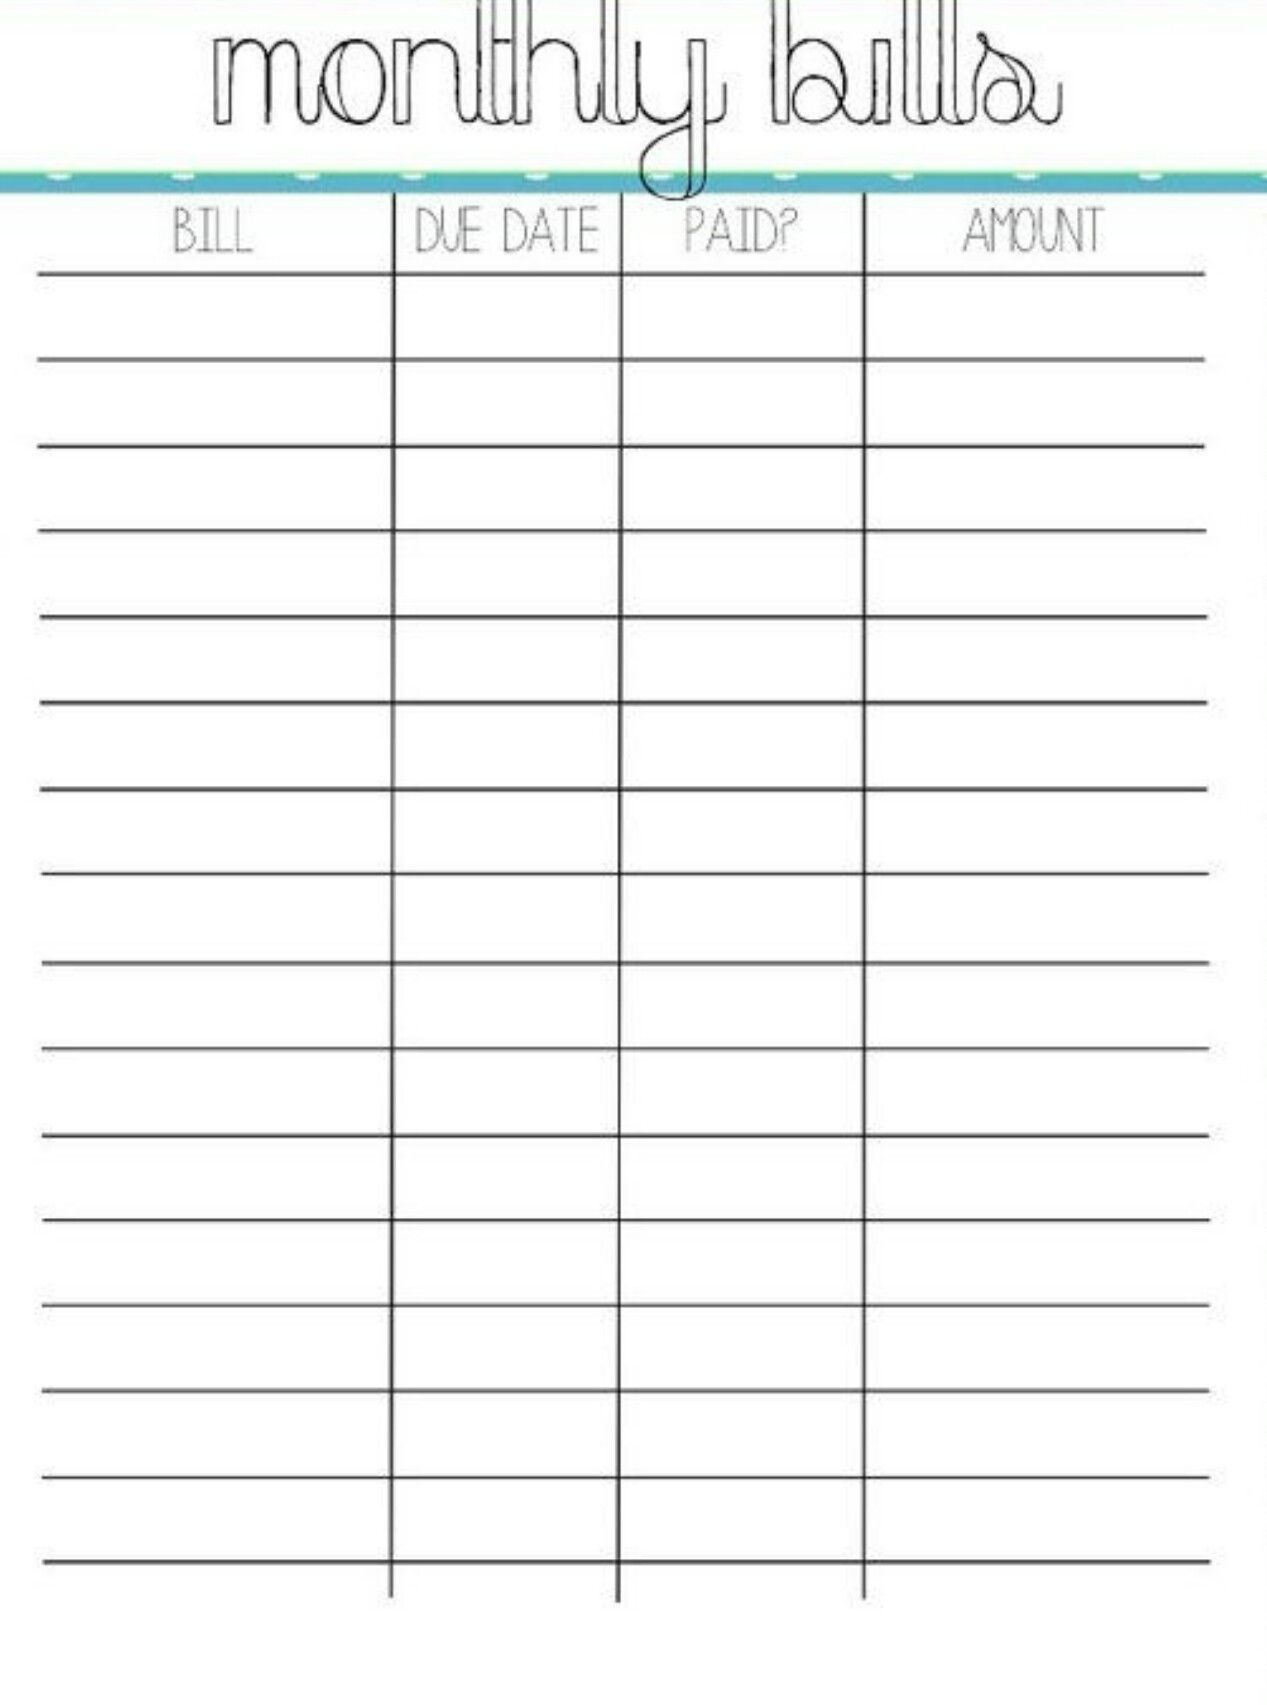 Pin By Crystal On Bills | Organizing Monthly Bills, Bills with regard to Free Printable Monthly Bill Chart